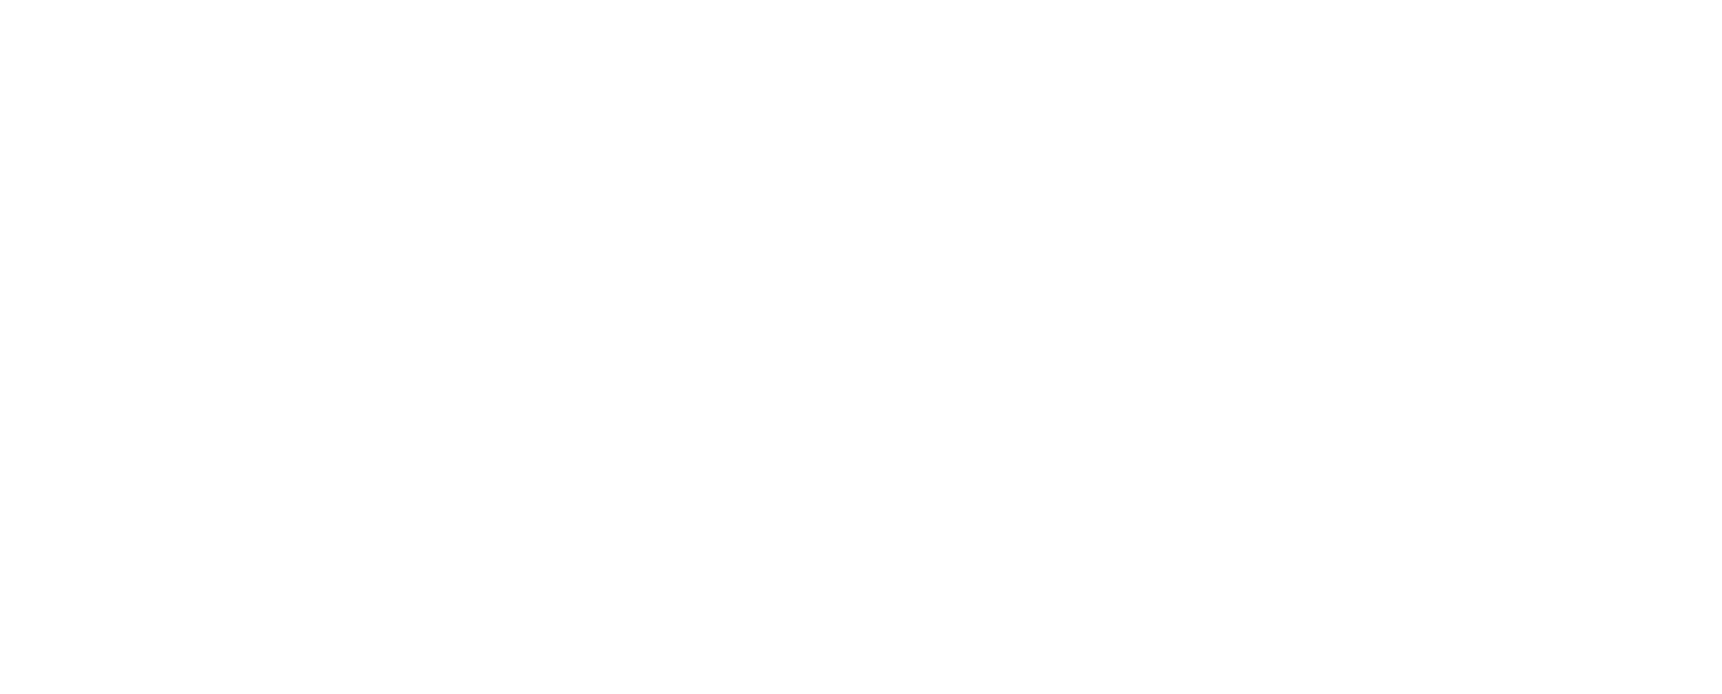 Black account membership services